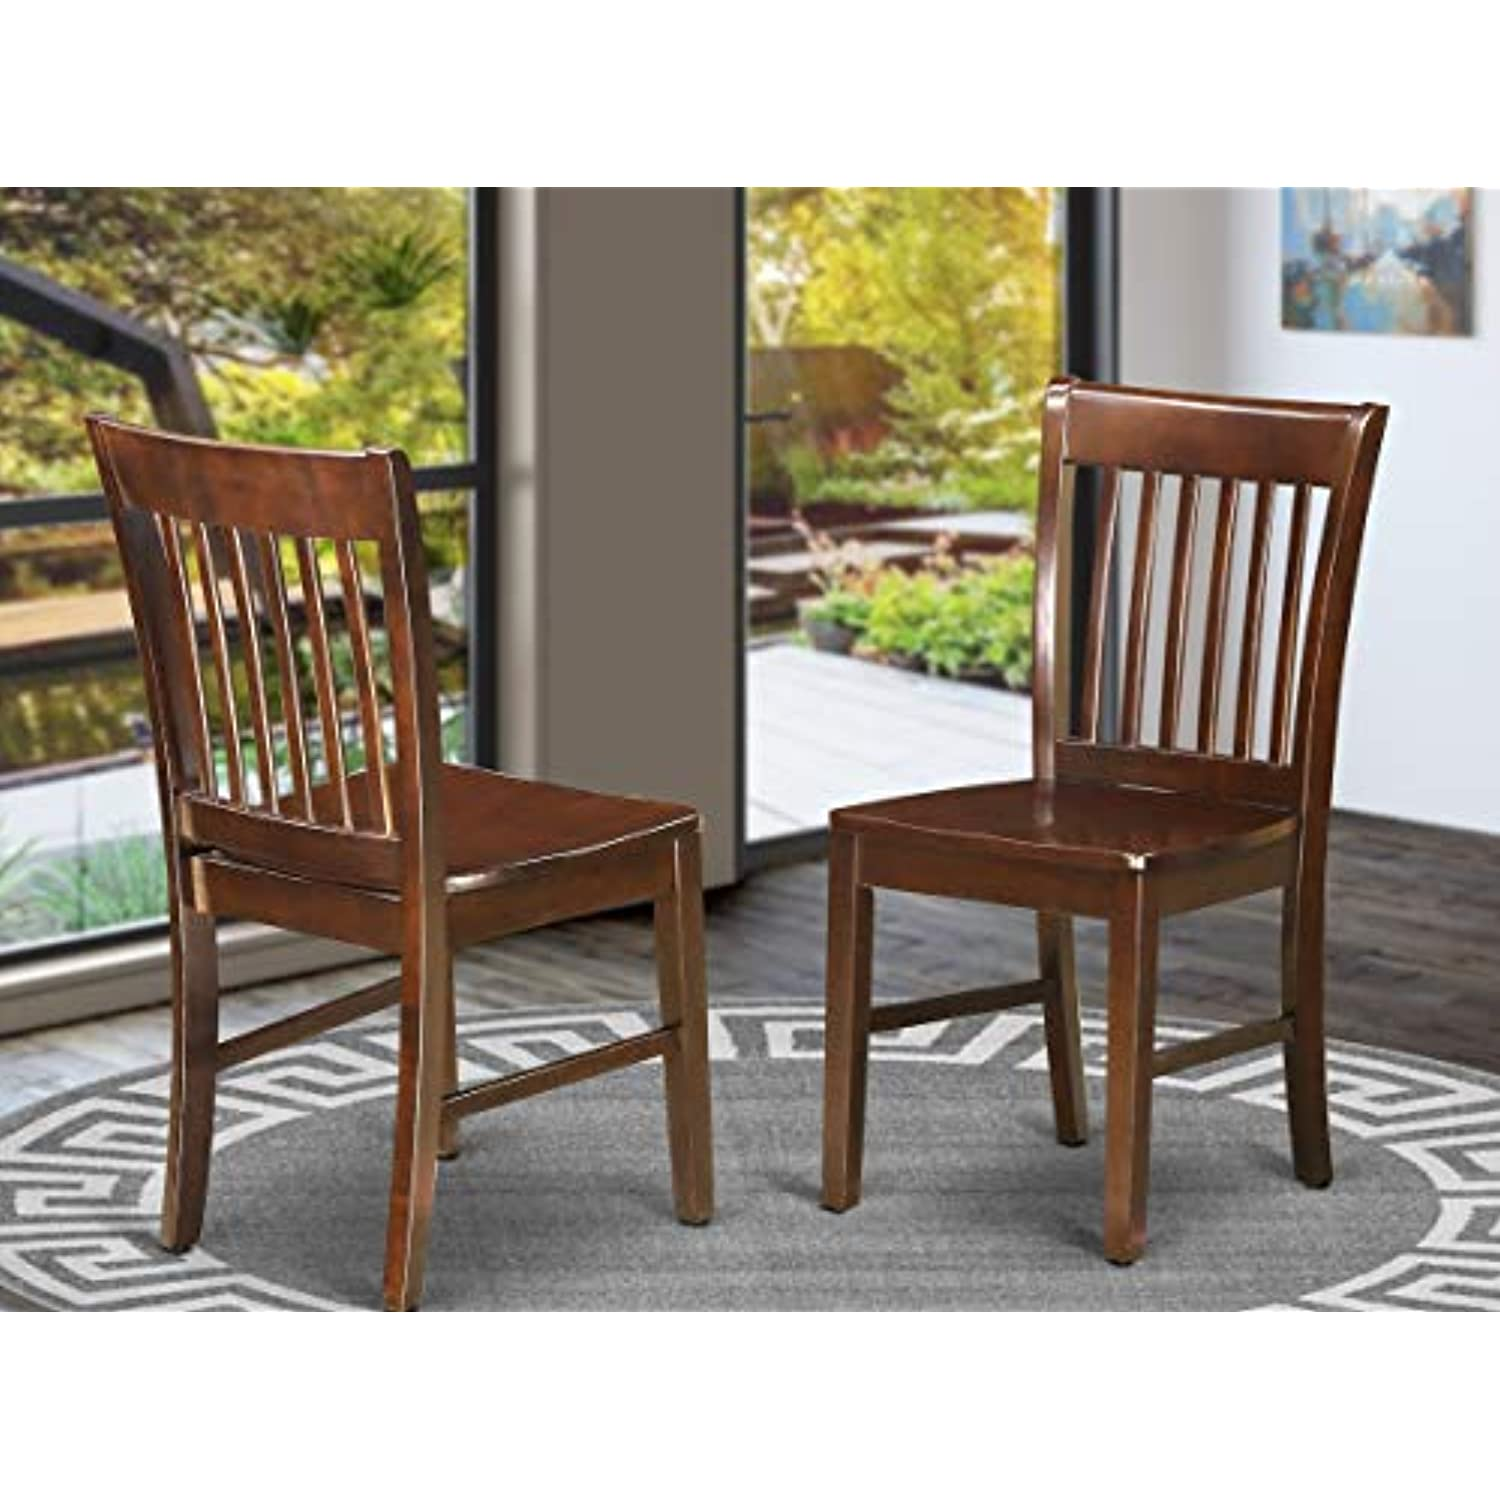 East West Furniture Norfolk Modern Dining Chairs - Wooden Seat and Mahogany Hardwood Frame Dining Room Chair set of 2